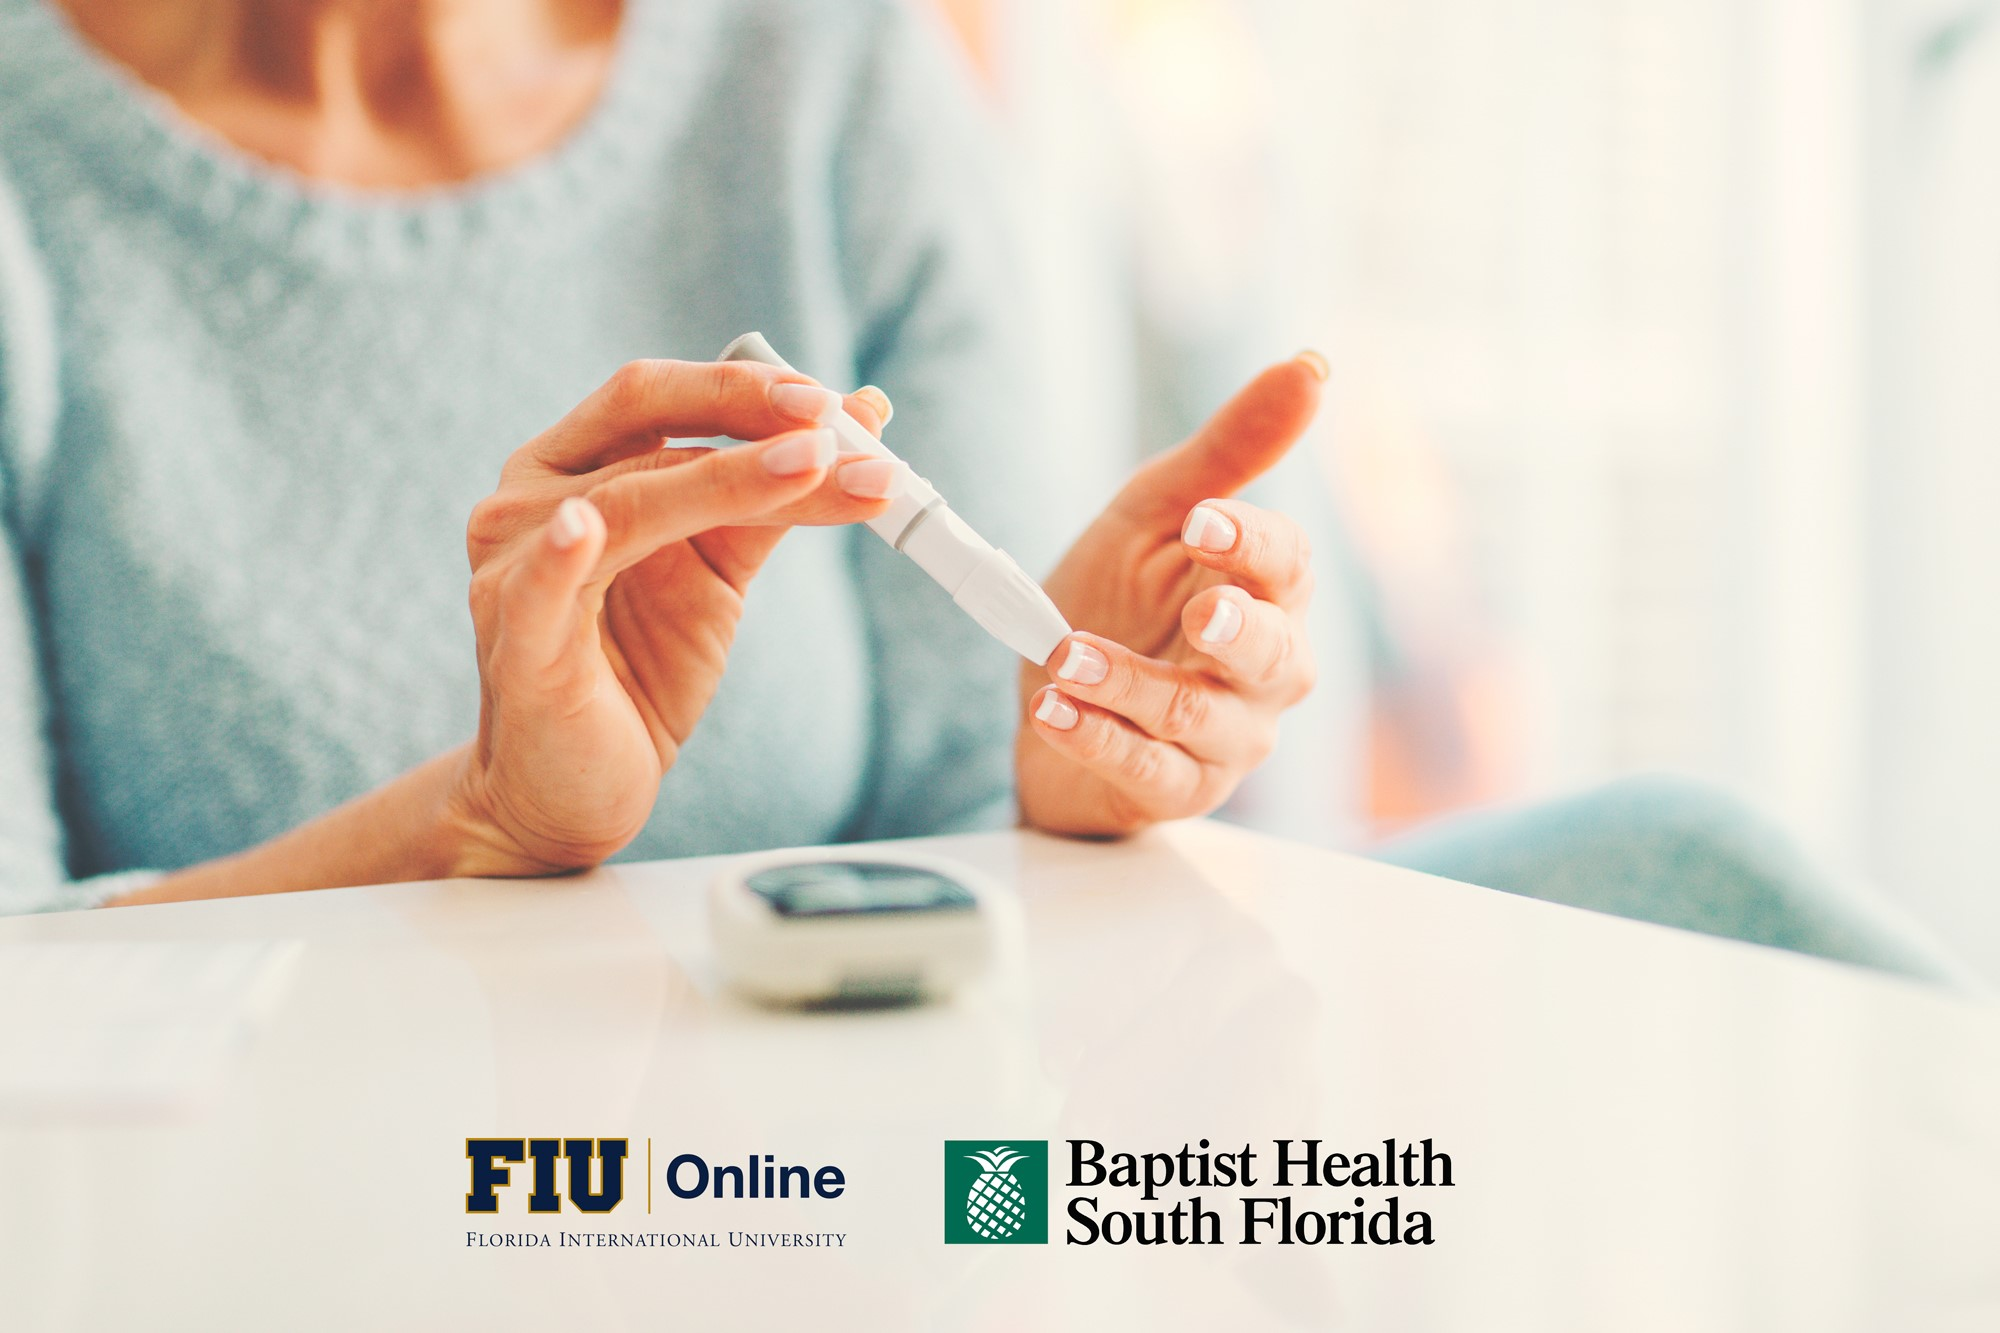 FIU Online and Baptist Health South Florida launch online course series